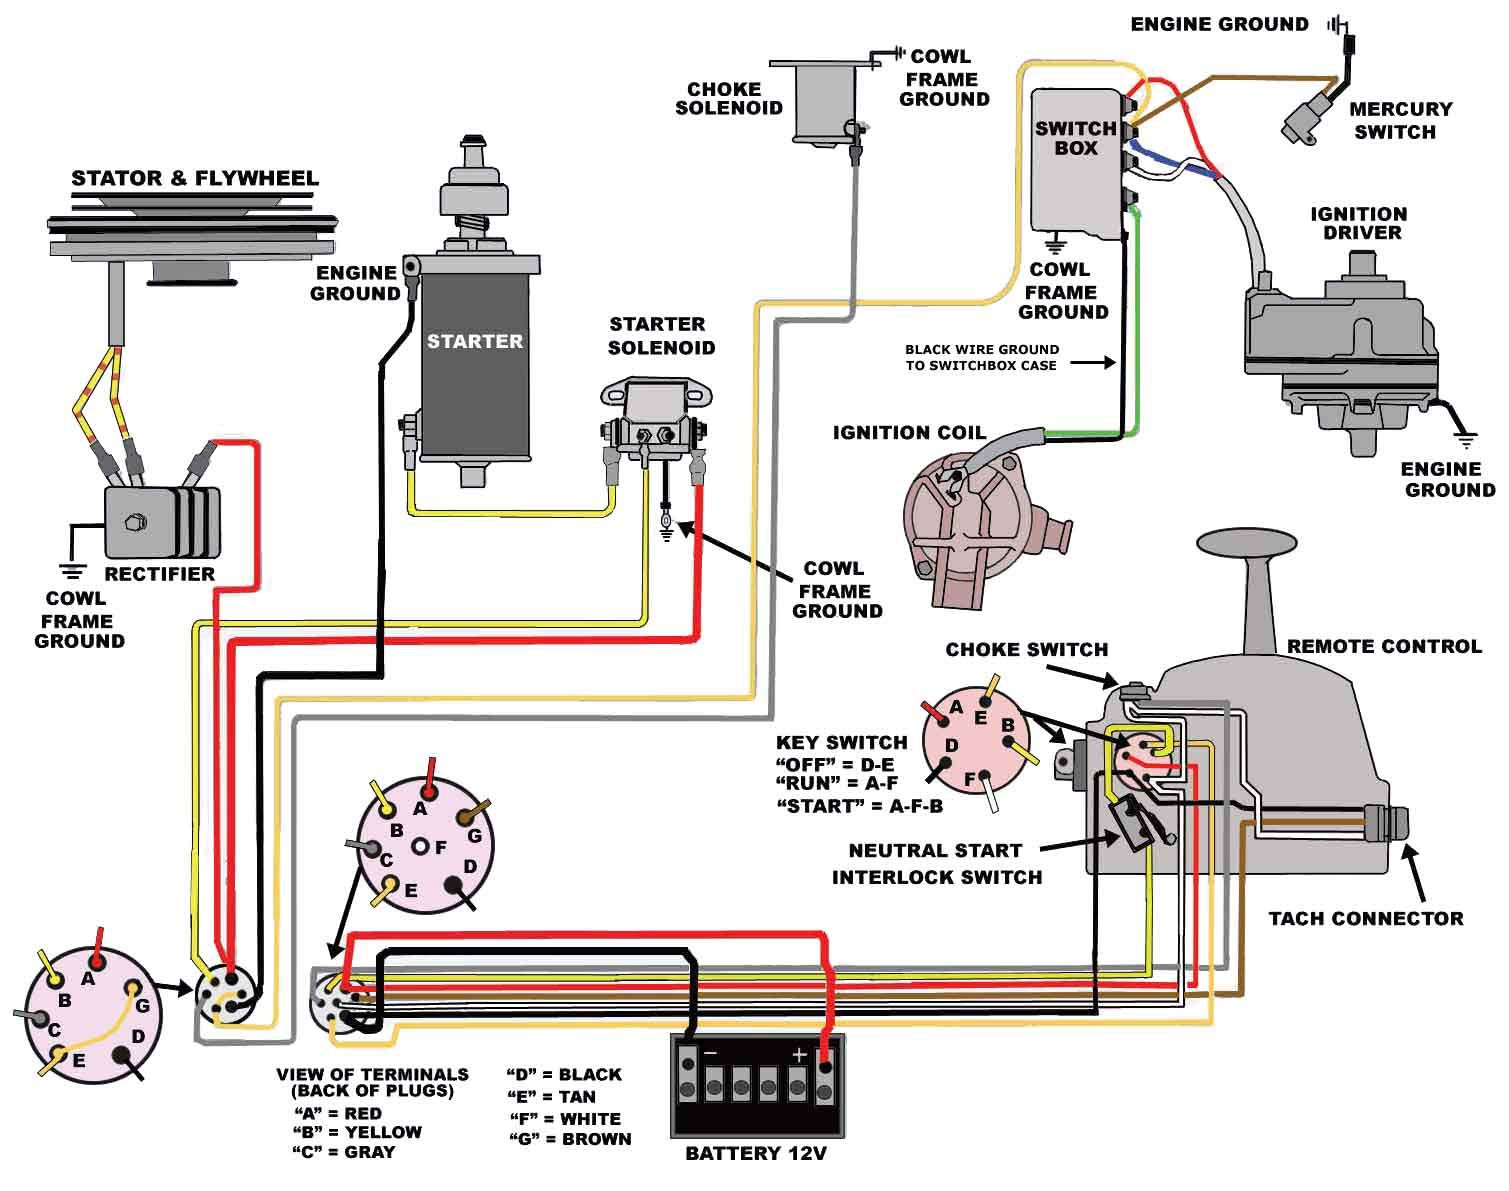 mercury outboard wiring diagram | diagram | pinterest | mercury, Wiring diagram